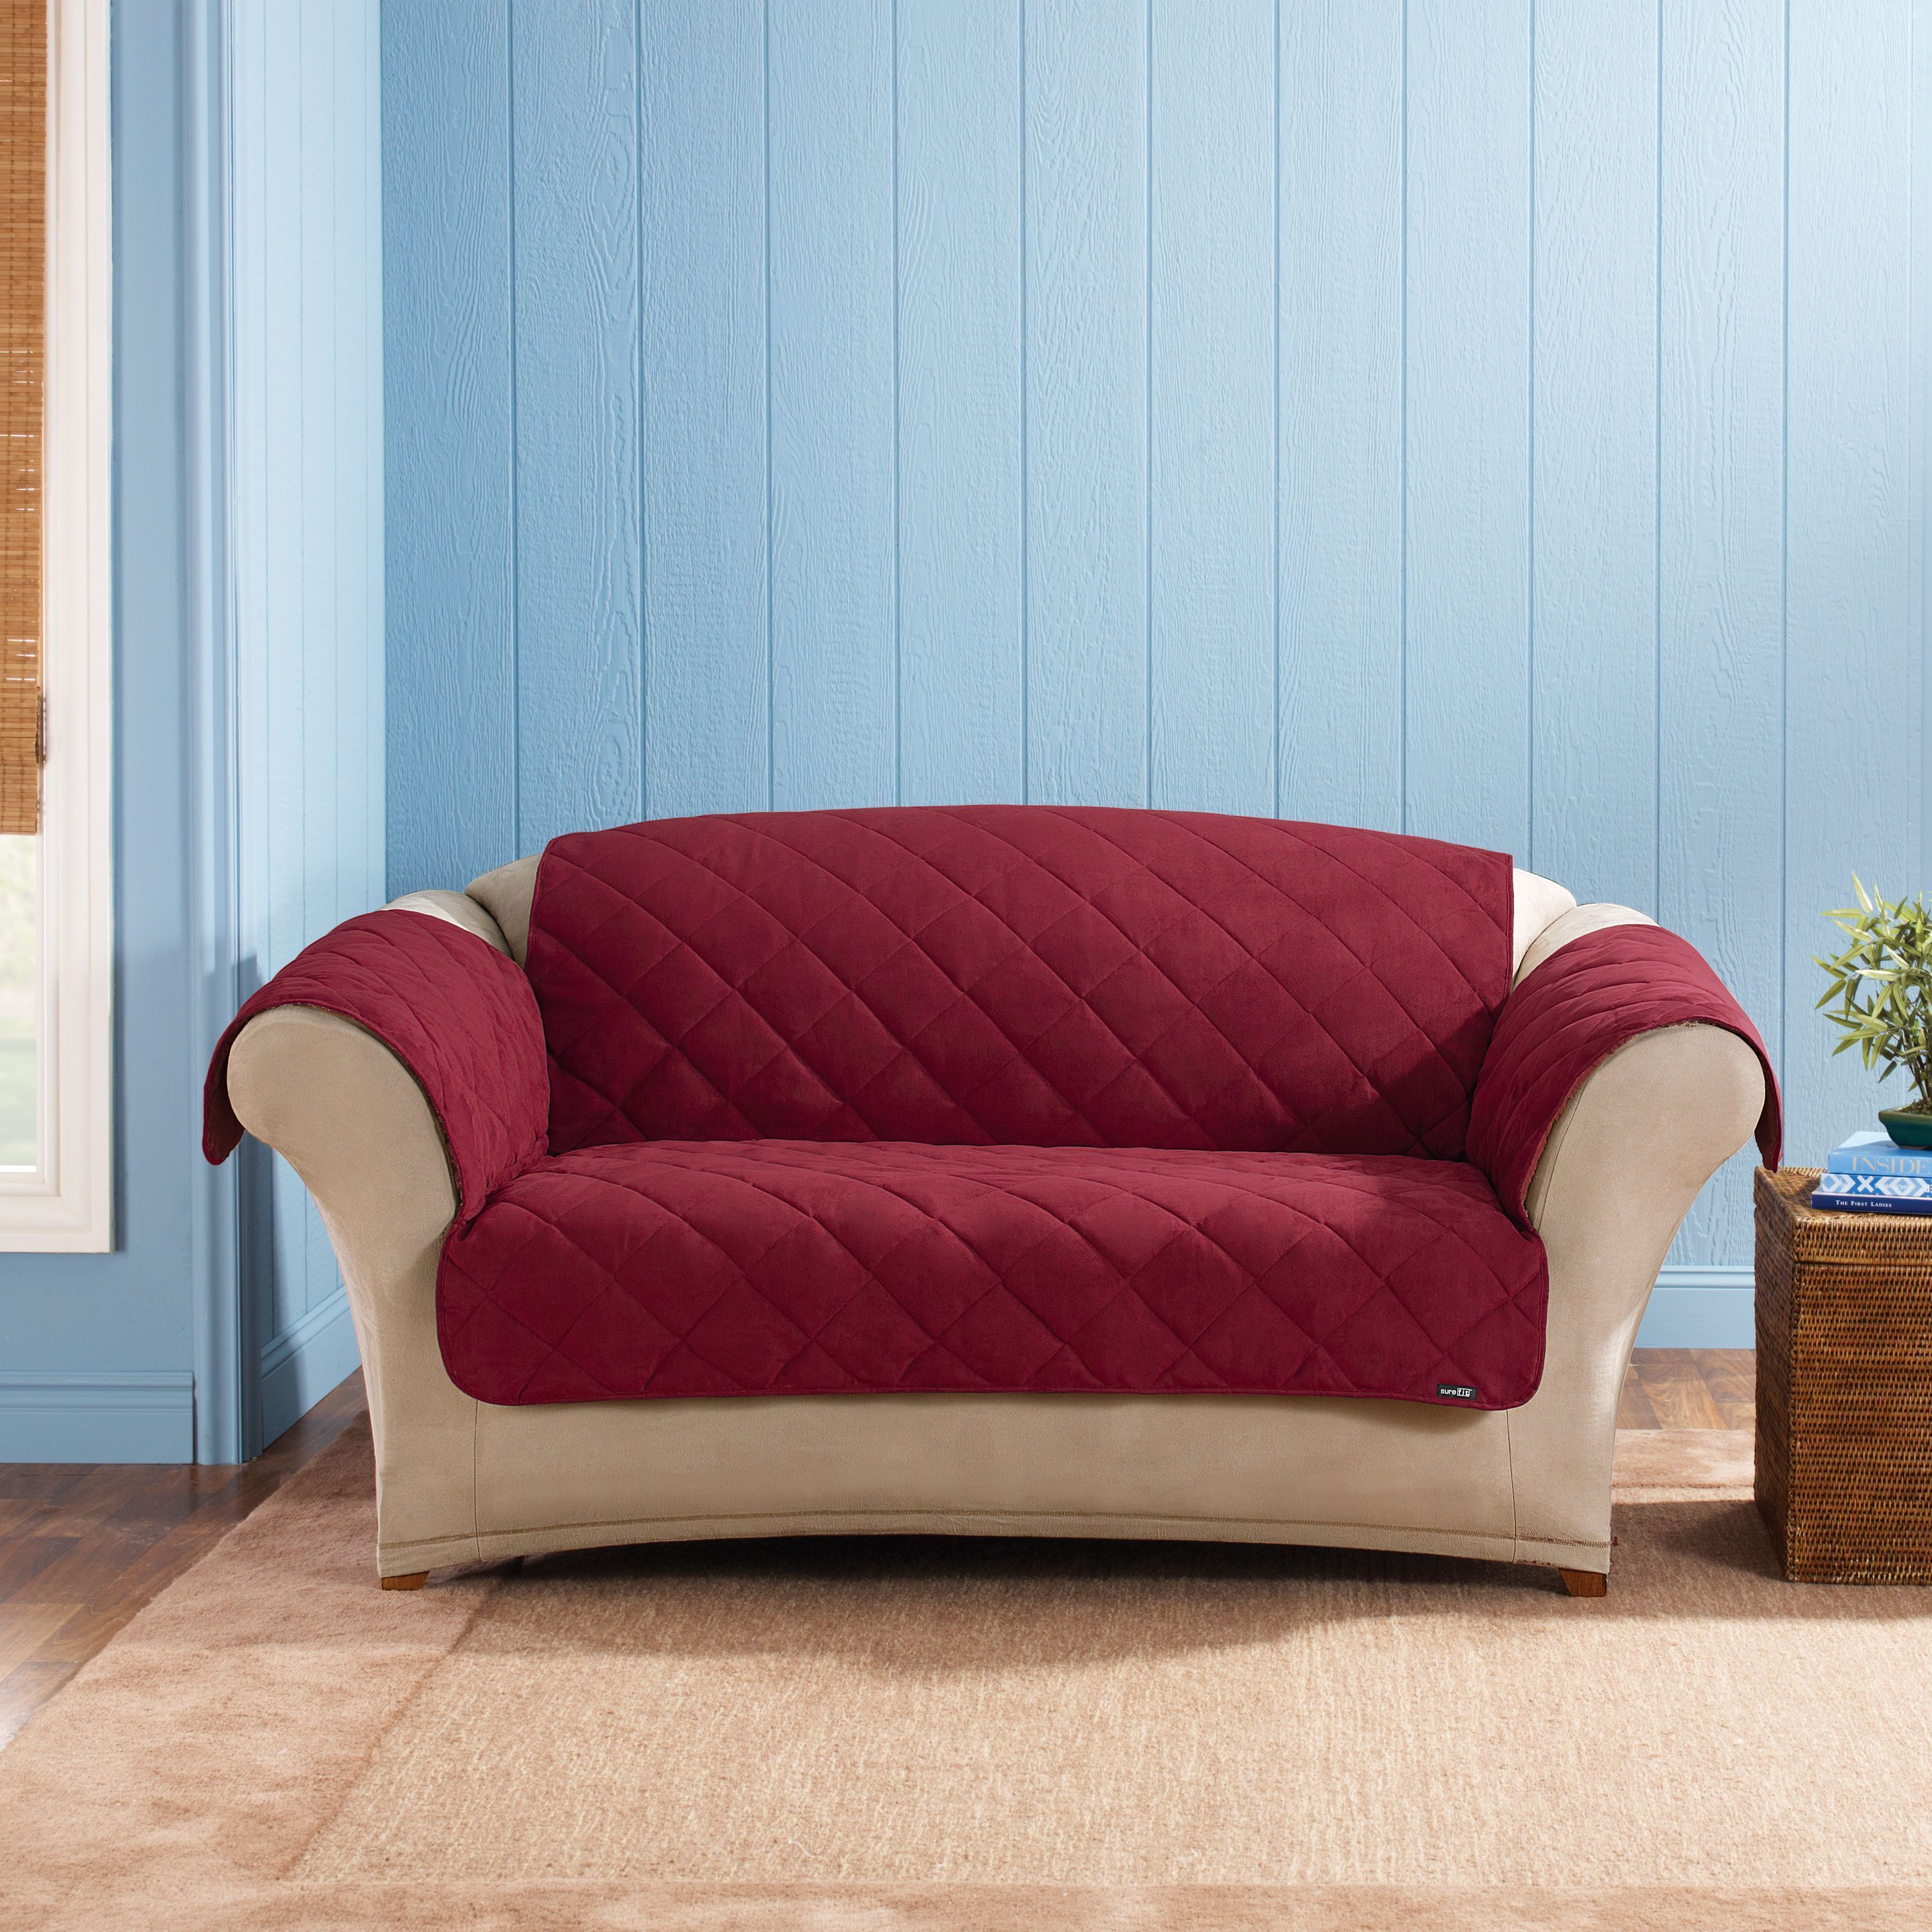 Prime Sure Fit Soft Suede Sherpa Reversible Loveseat Pet Throw Bralicious Painted Fabric Chair Ideas Braliciousco